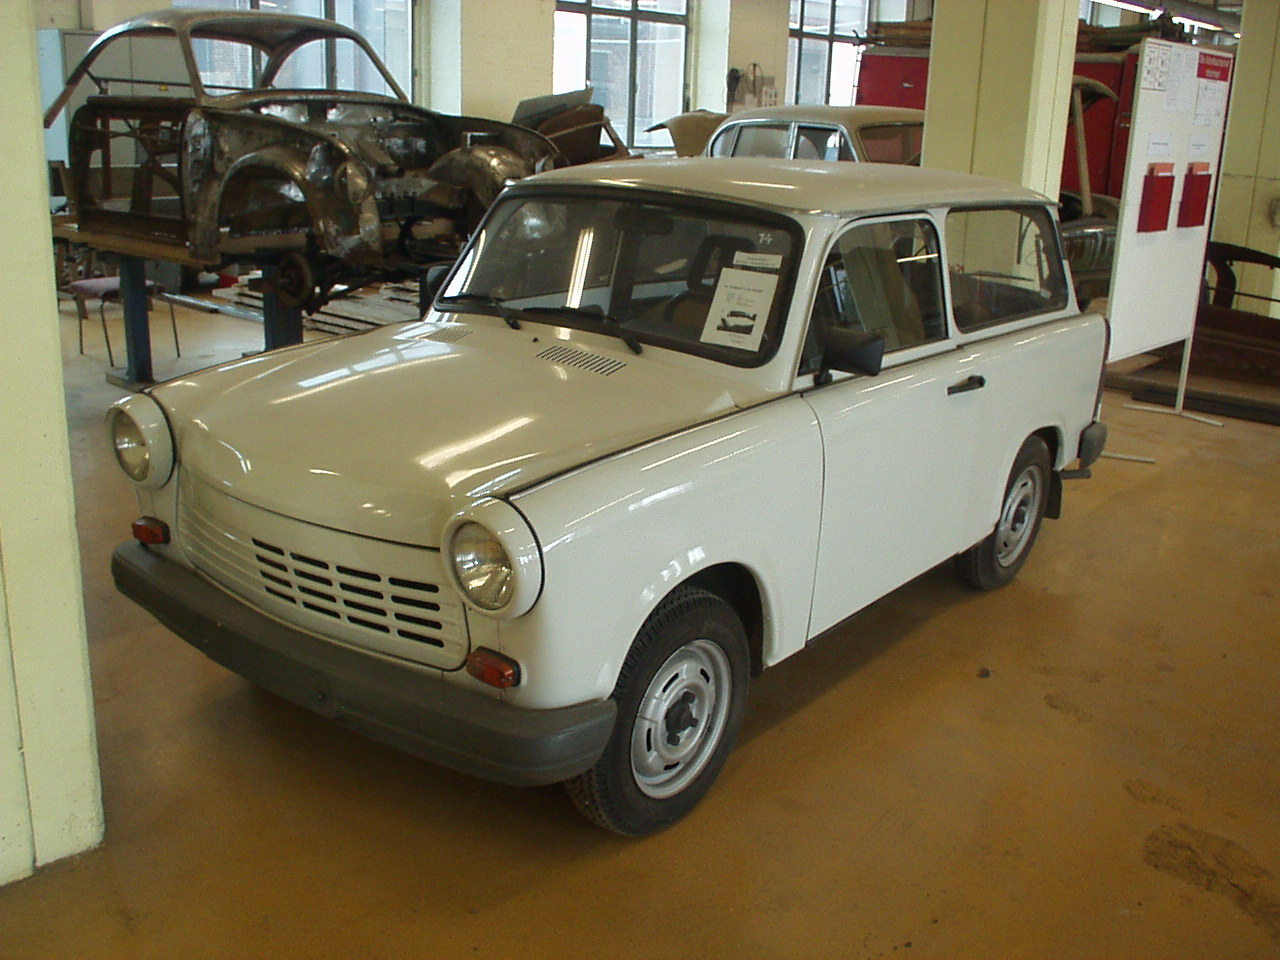 trabant 1 1 universal 1989 1991 trabant 1 1 universal 1989 1991 photo 03 car in pictures car. Black Bedroom Furniture Sets. Home Design Ideas